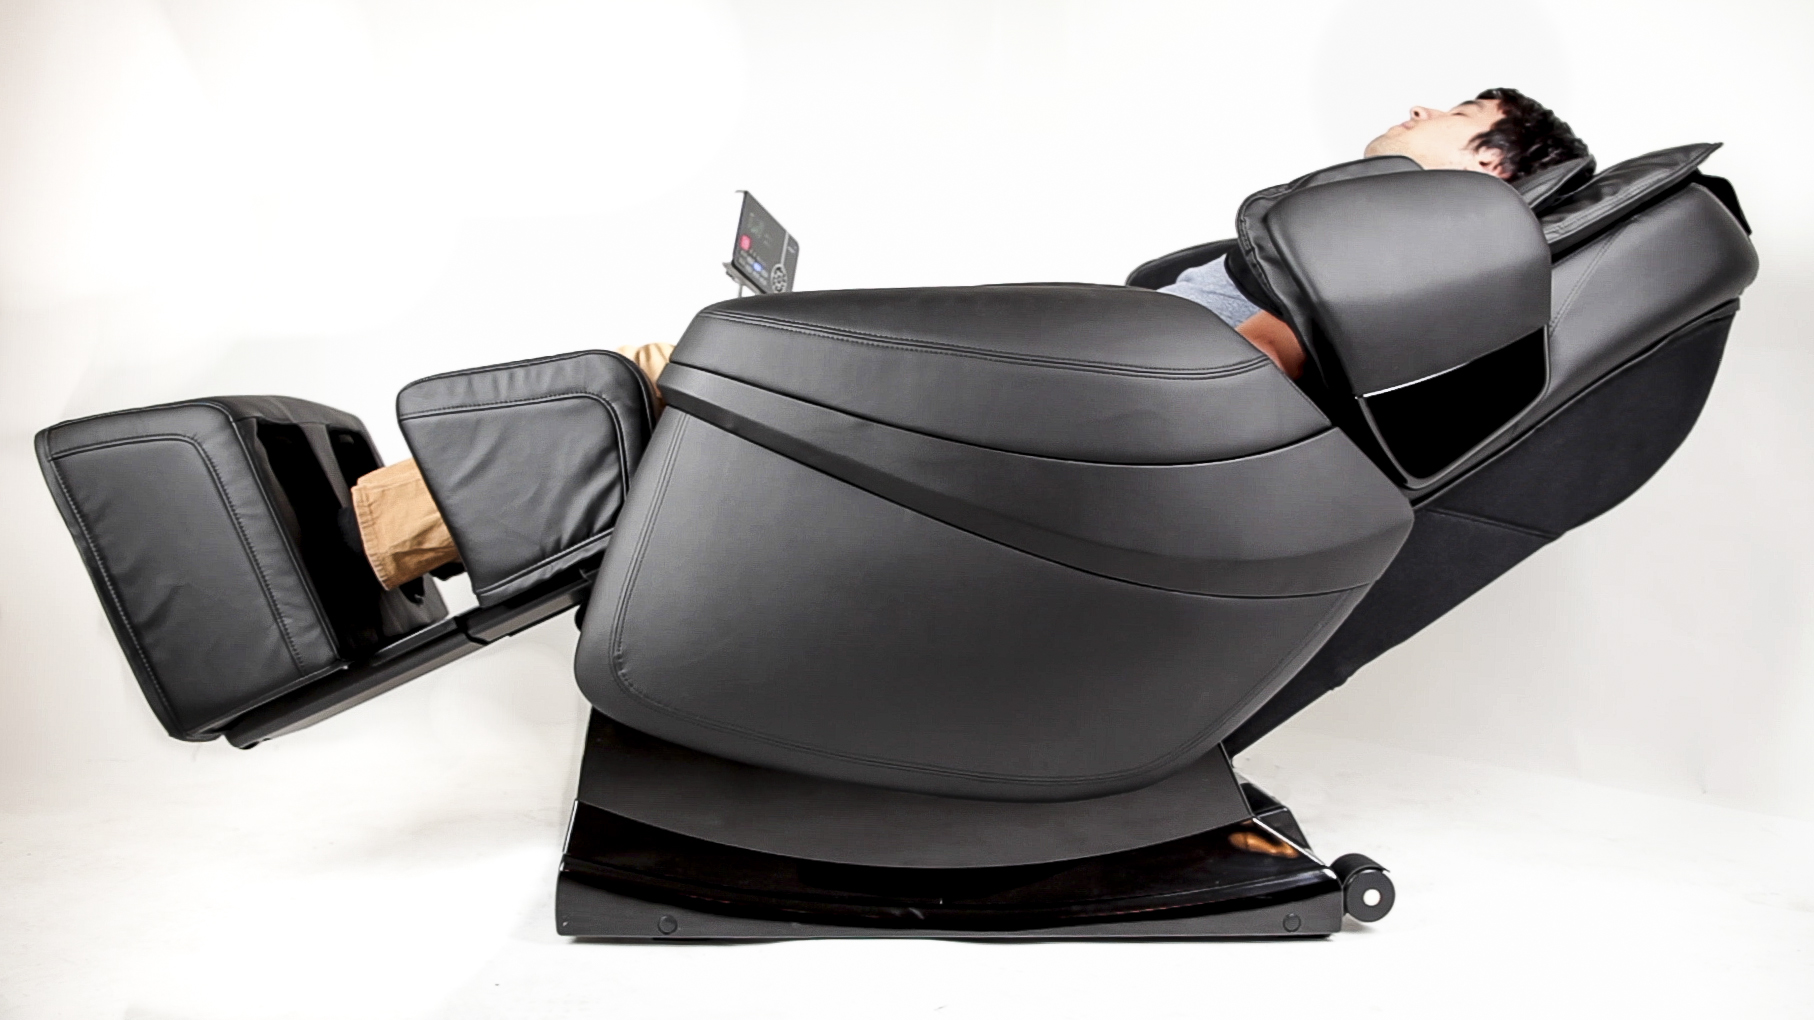 Full Body Massage Chair Tennessee